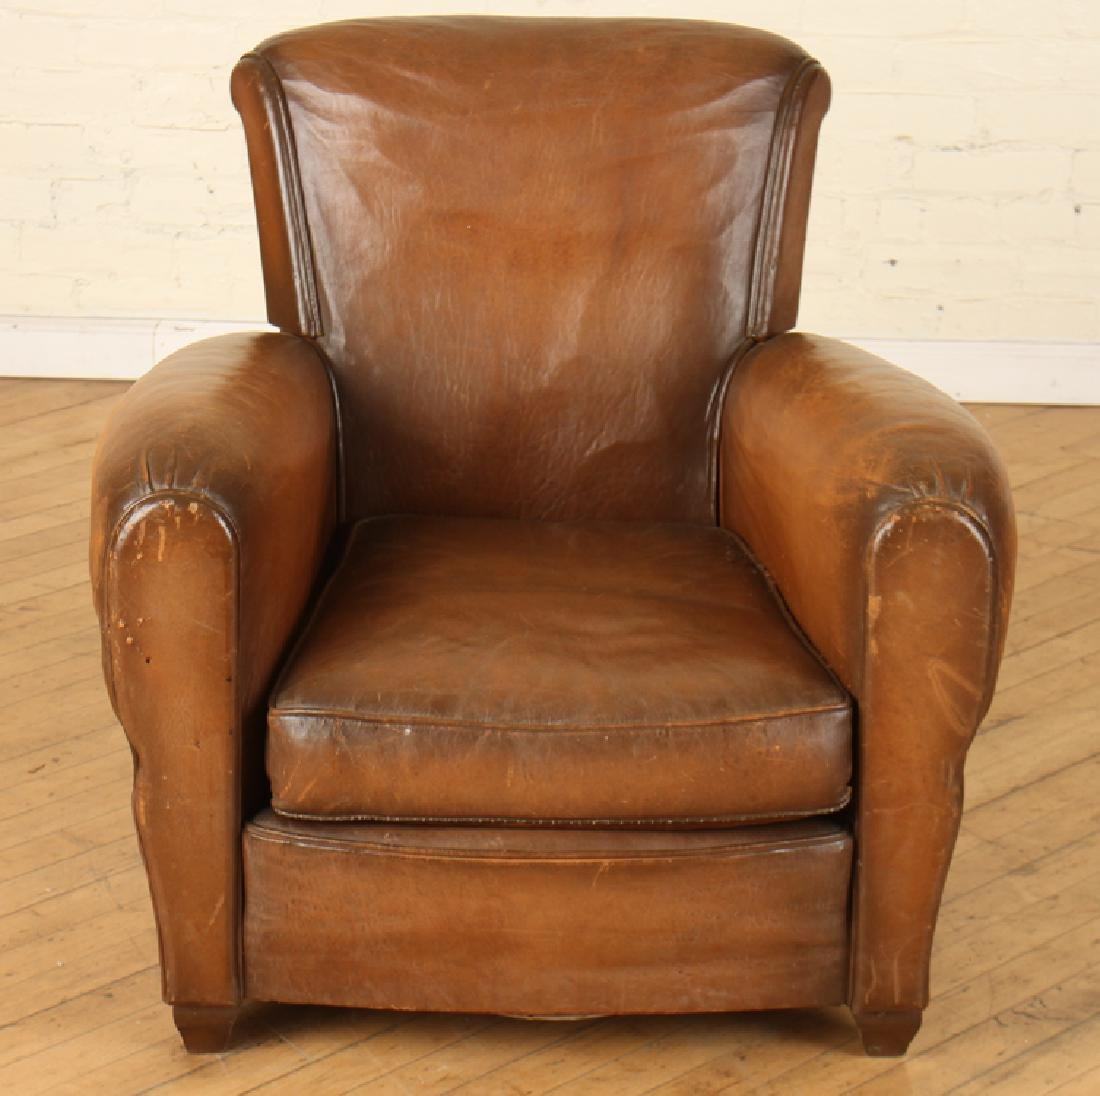 FRENCH LEATHER CLUB CHAIR CIRCA 1940 - 2